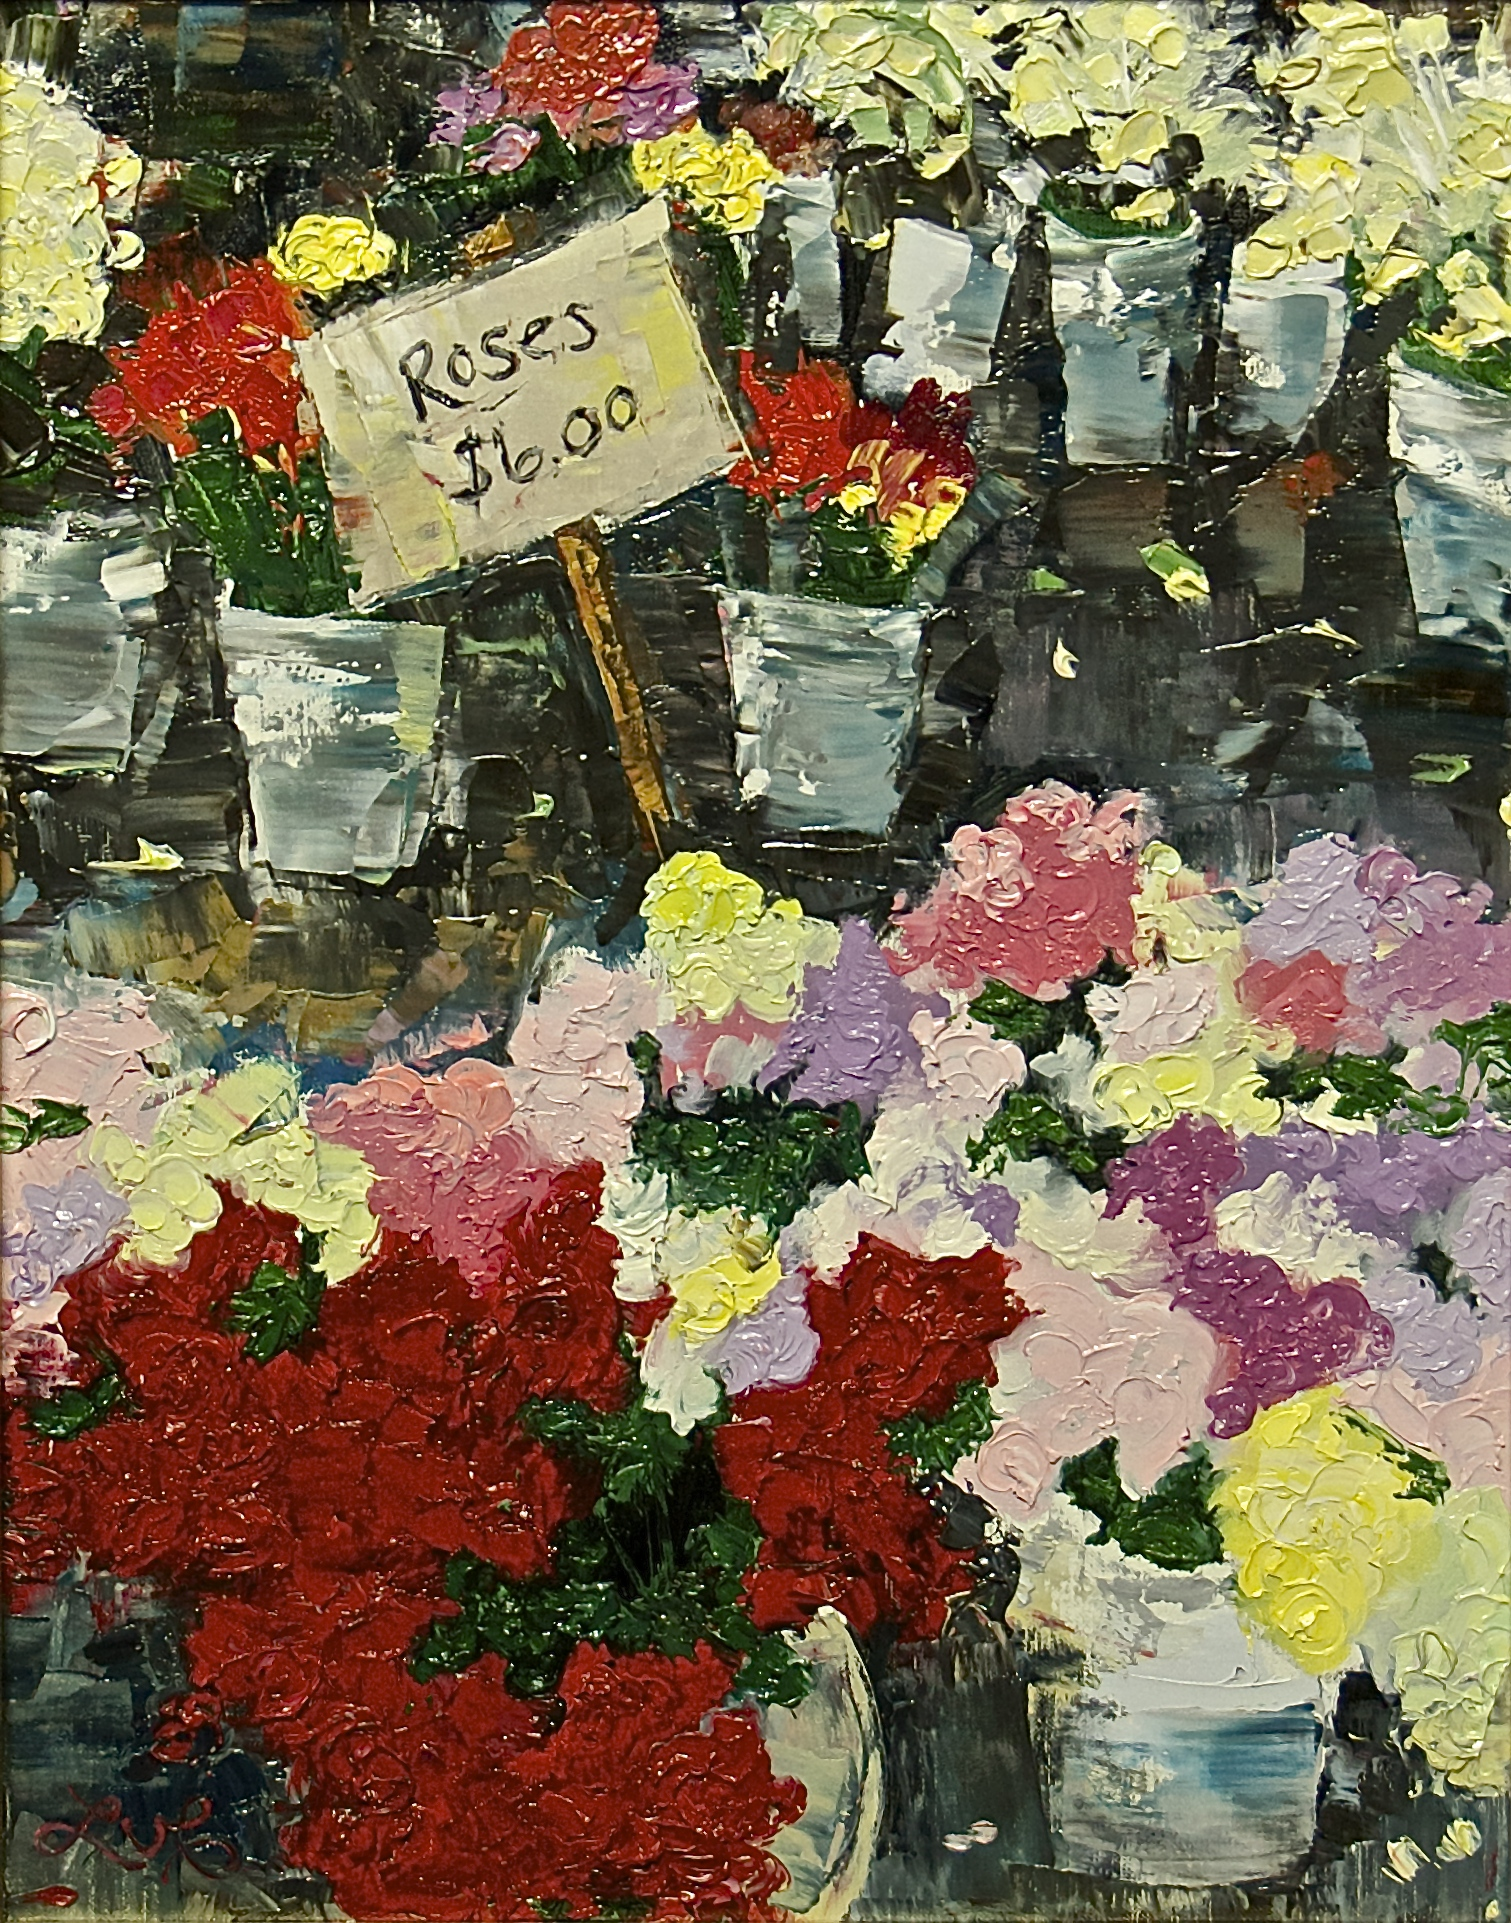 Roses at the Market